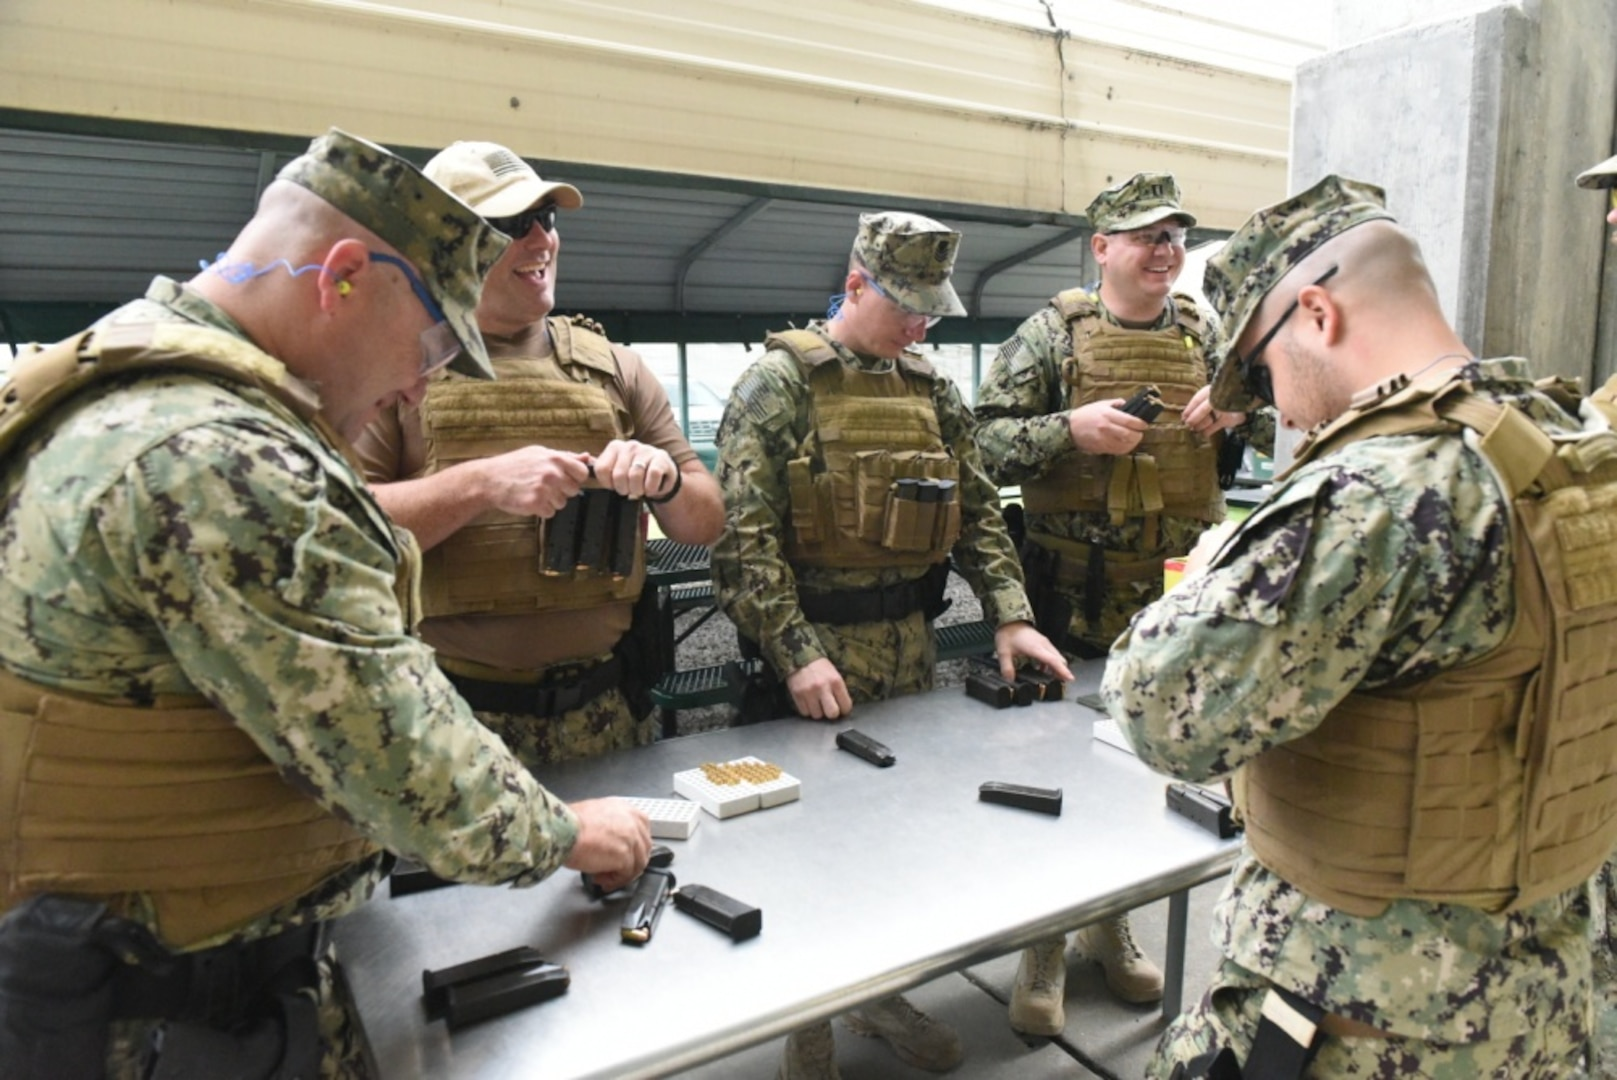 Coast Guard members with Port Security Unit 307 load magazines before completing weapons training at Pinellas County Sheriff's Office firing range in Clearwater, Florida, Nov. 16, 2019. Members with the Clearwater-based unit conduct training to maintain readiness in order to deploy anywhere in the world within 96 hours. U.S. Coast Guard photo by Petty Officer 2nd Class Ashley J. Johnson.